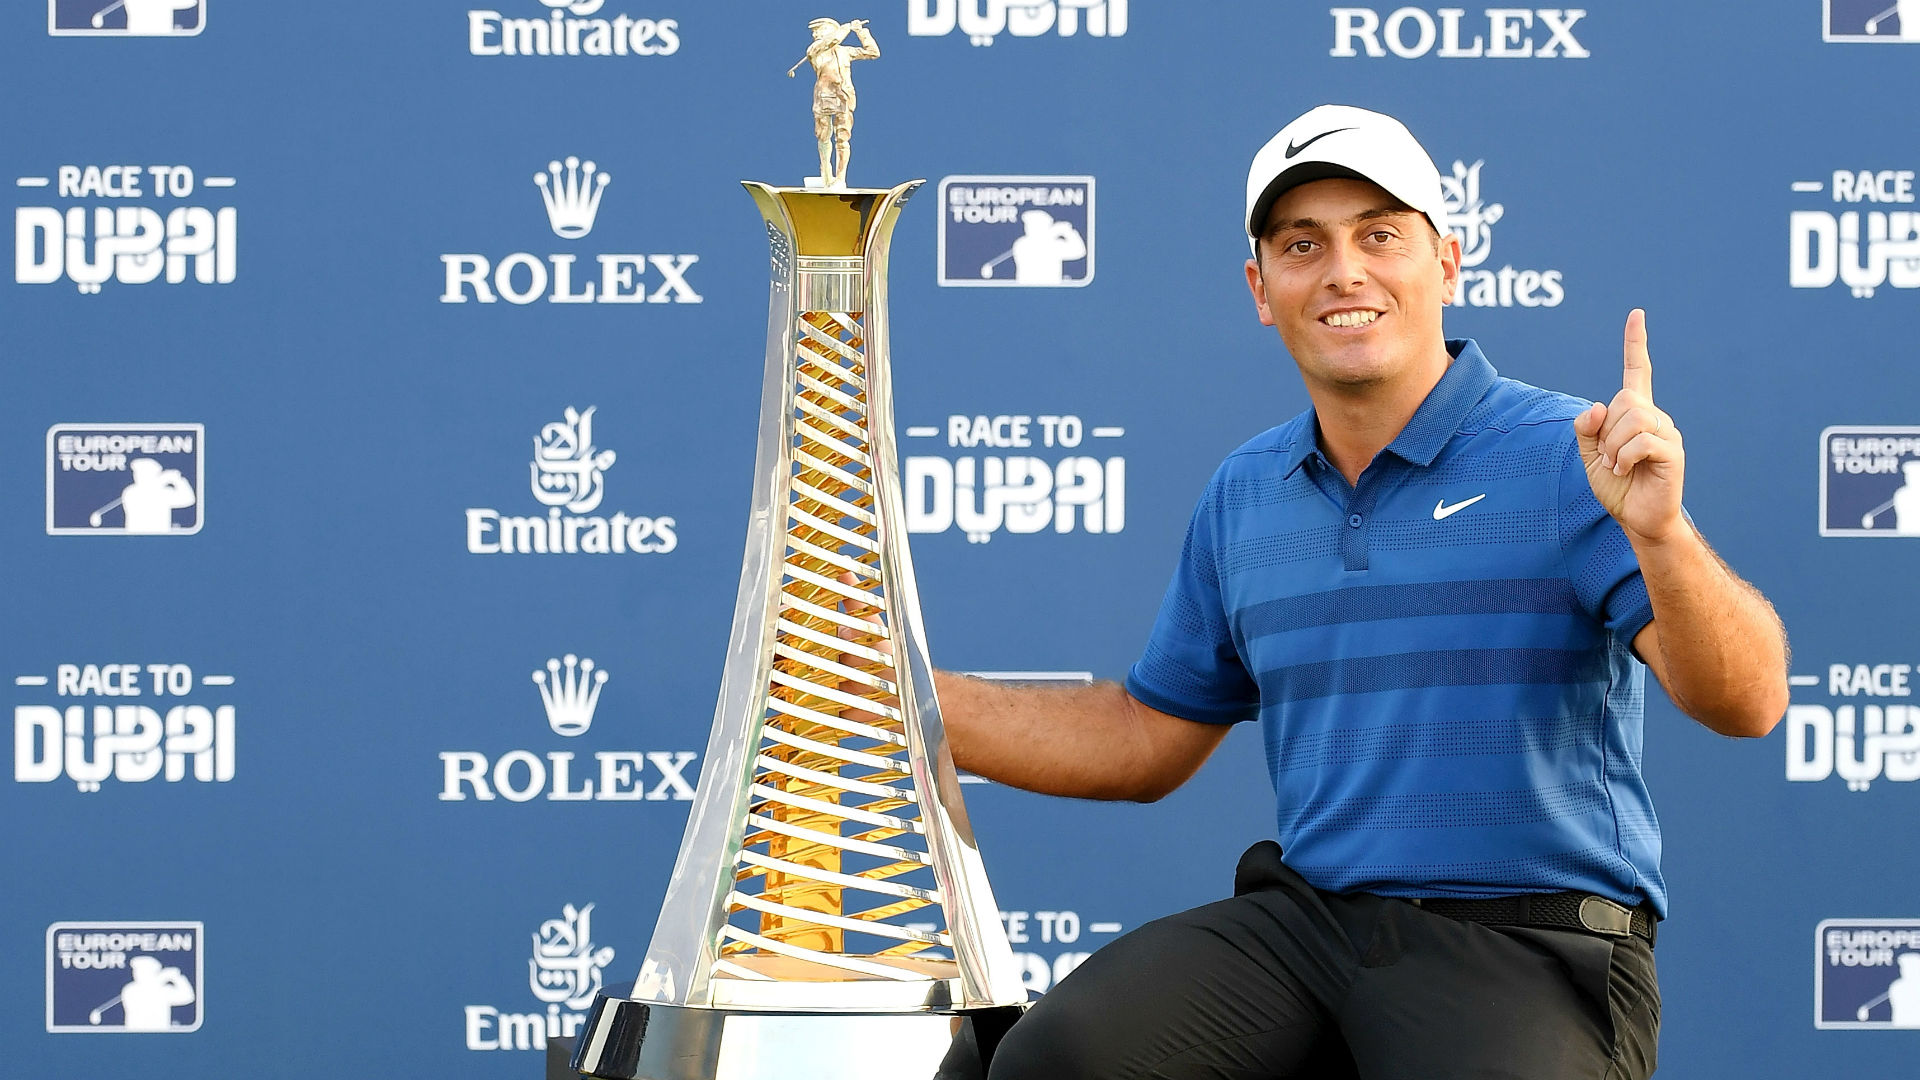 It doesn't sound real - Molinari stunned by 2018 exploits